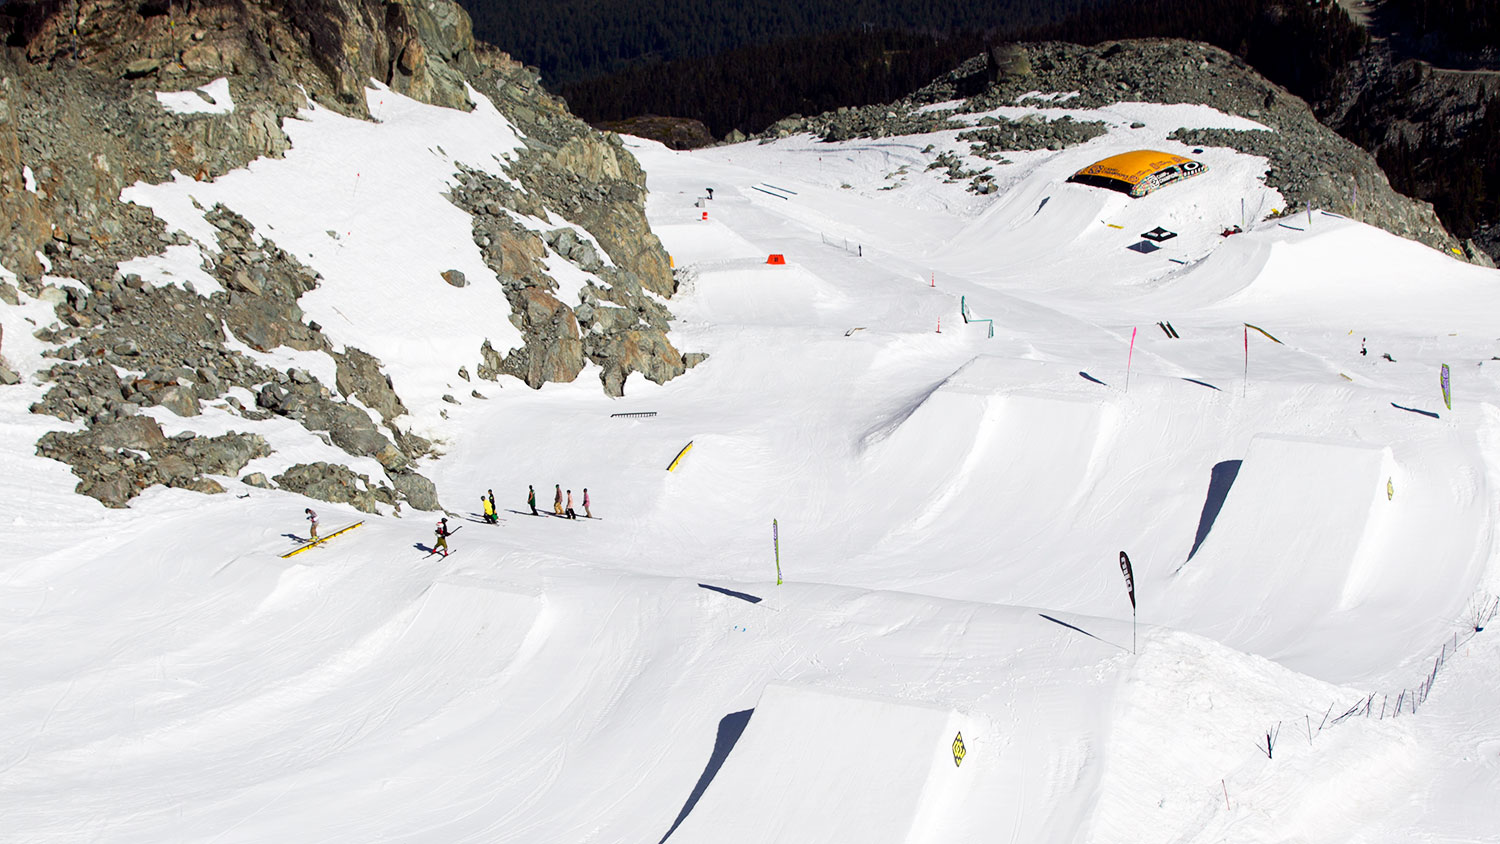 Located on Blackcomb's Horstman Glacier above Whistler, Camp of Champions' fortunate location means it will still open despite the low-snow year. PHOTO: Courtesy of Camp of Champions